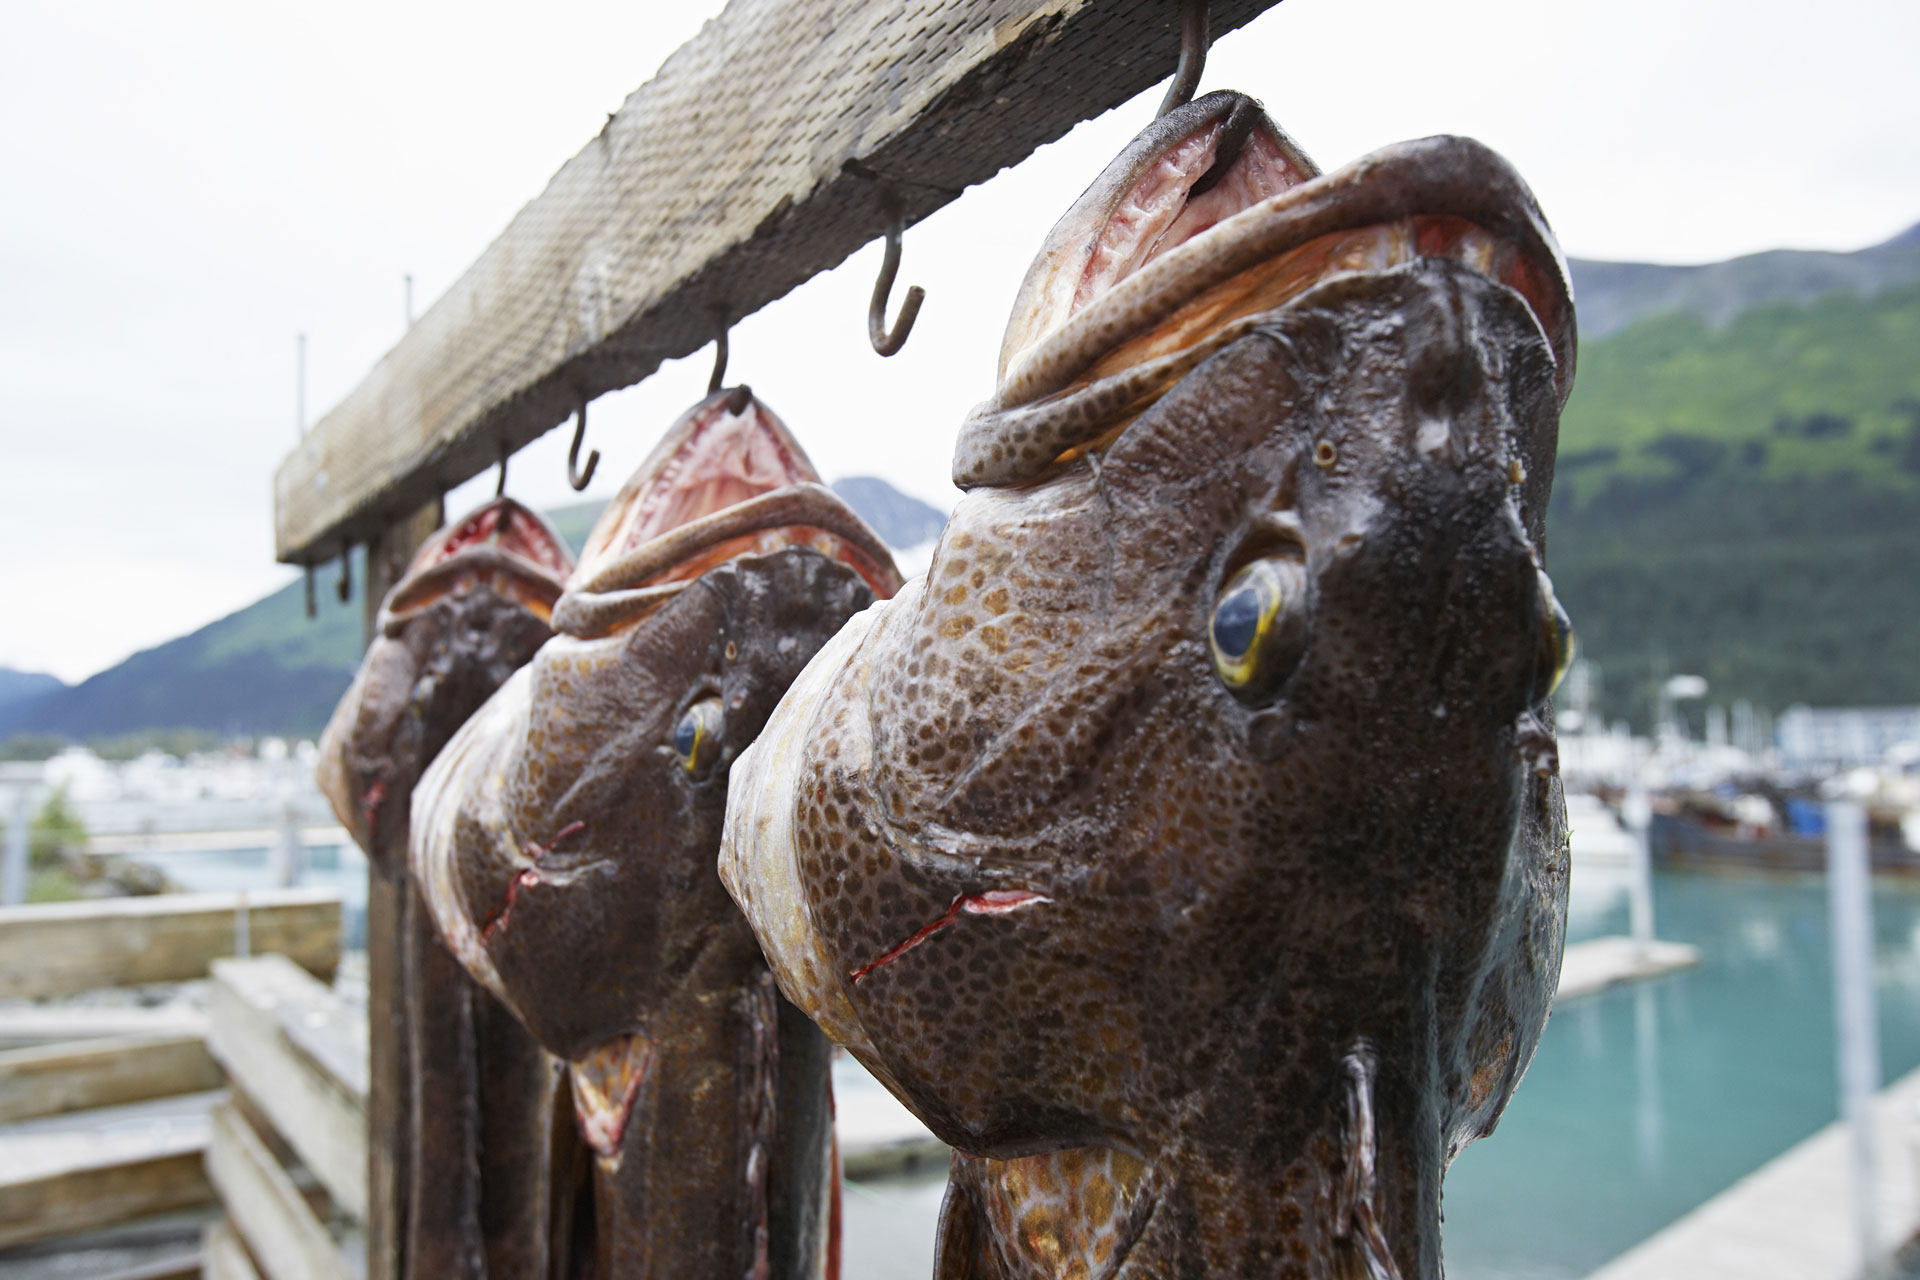 Closeup of three dead ling cods hanging on hooks, Alaska, USA